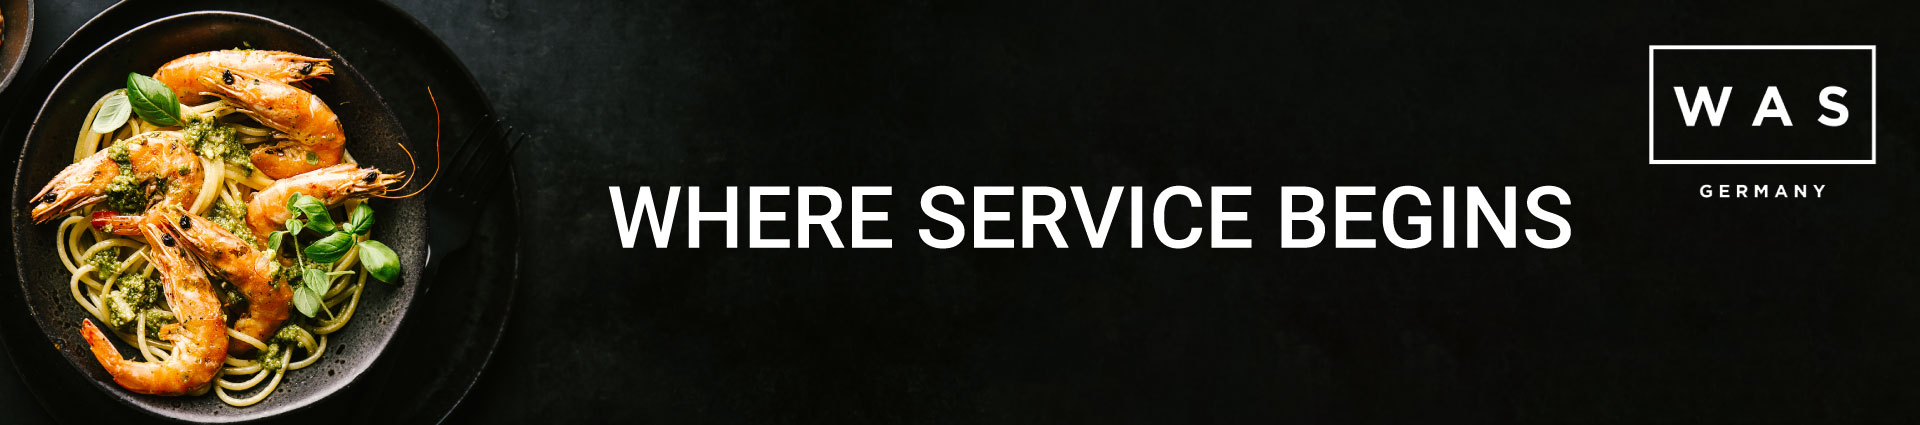 WAS WHERE SERVICE BEGINS Banner